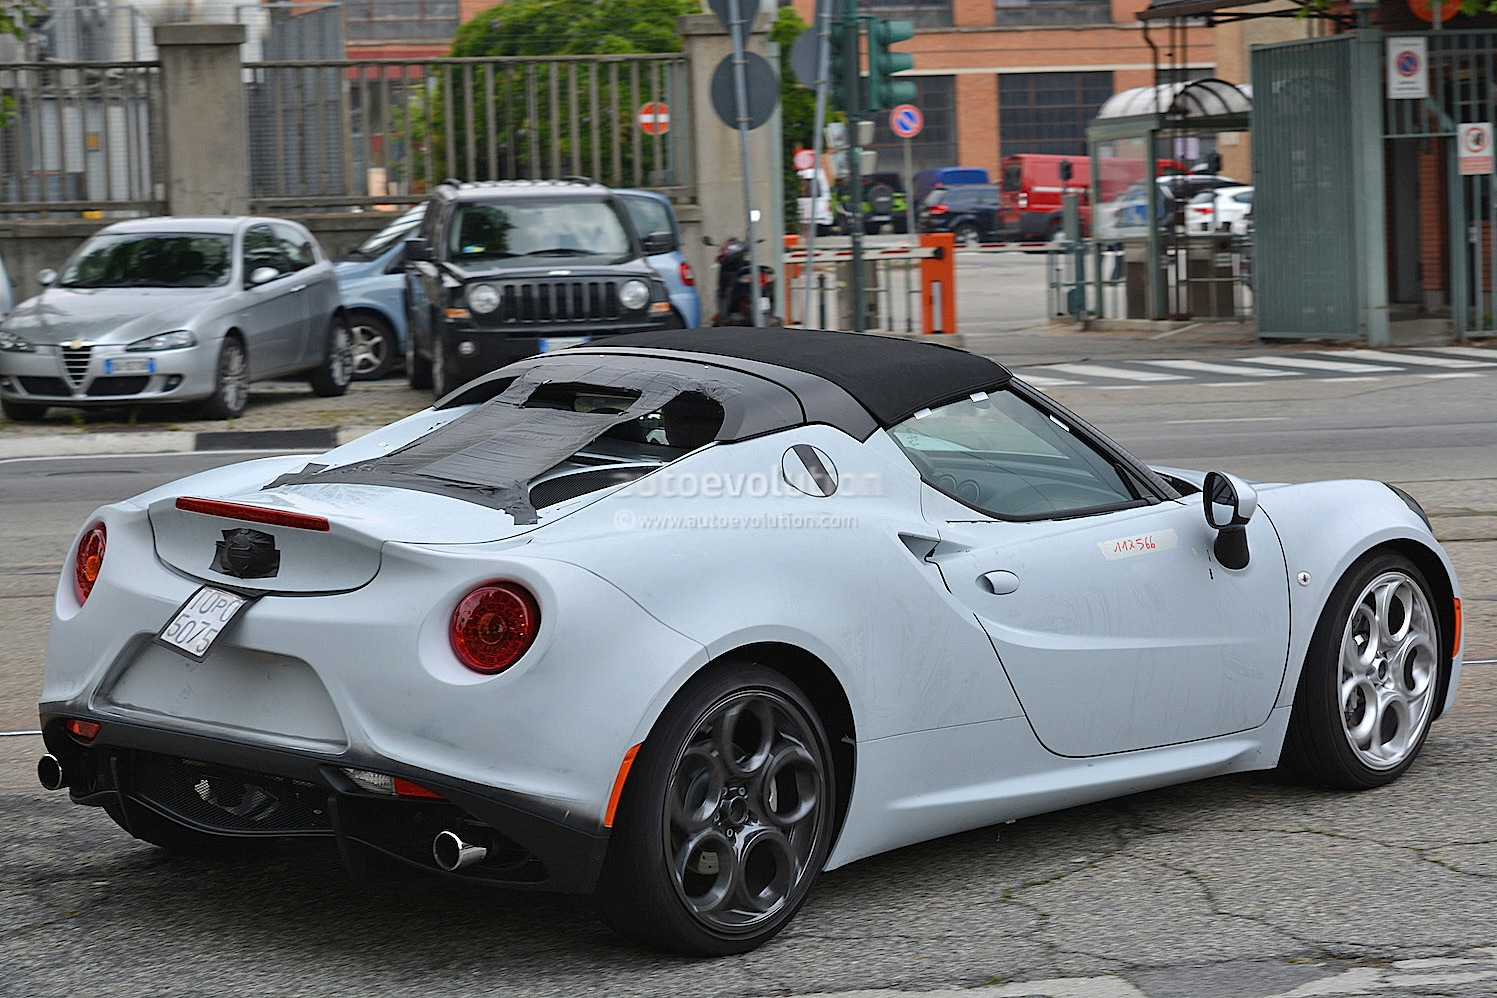 alfa romeo 4c spider spied in production form will debut in 2015 autoevolution. Black Bedroom Furniture Sets. Home Design Ideas